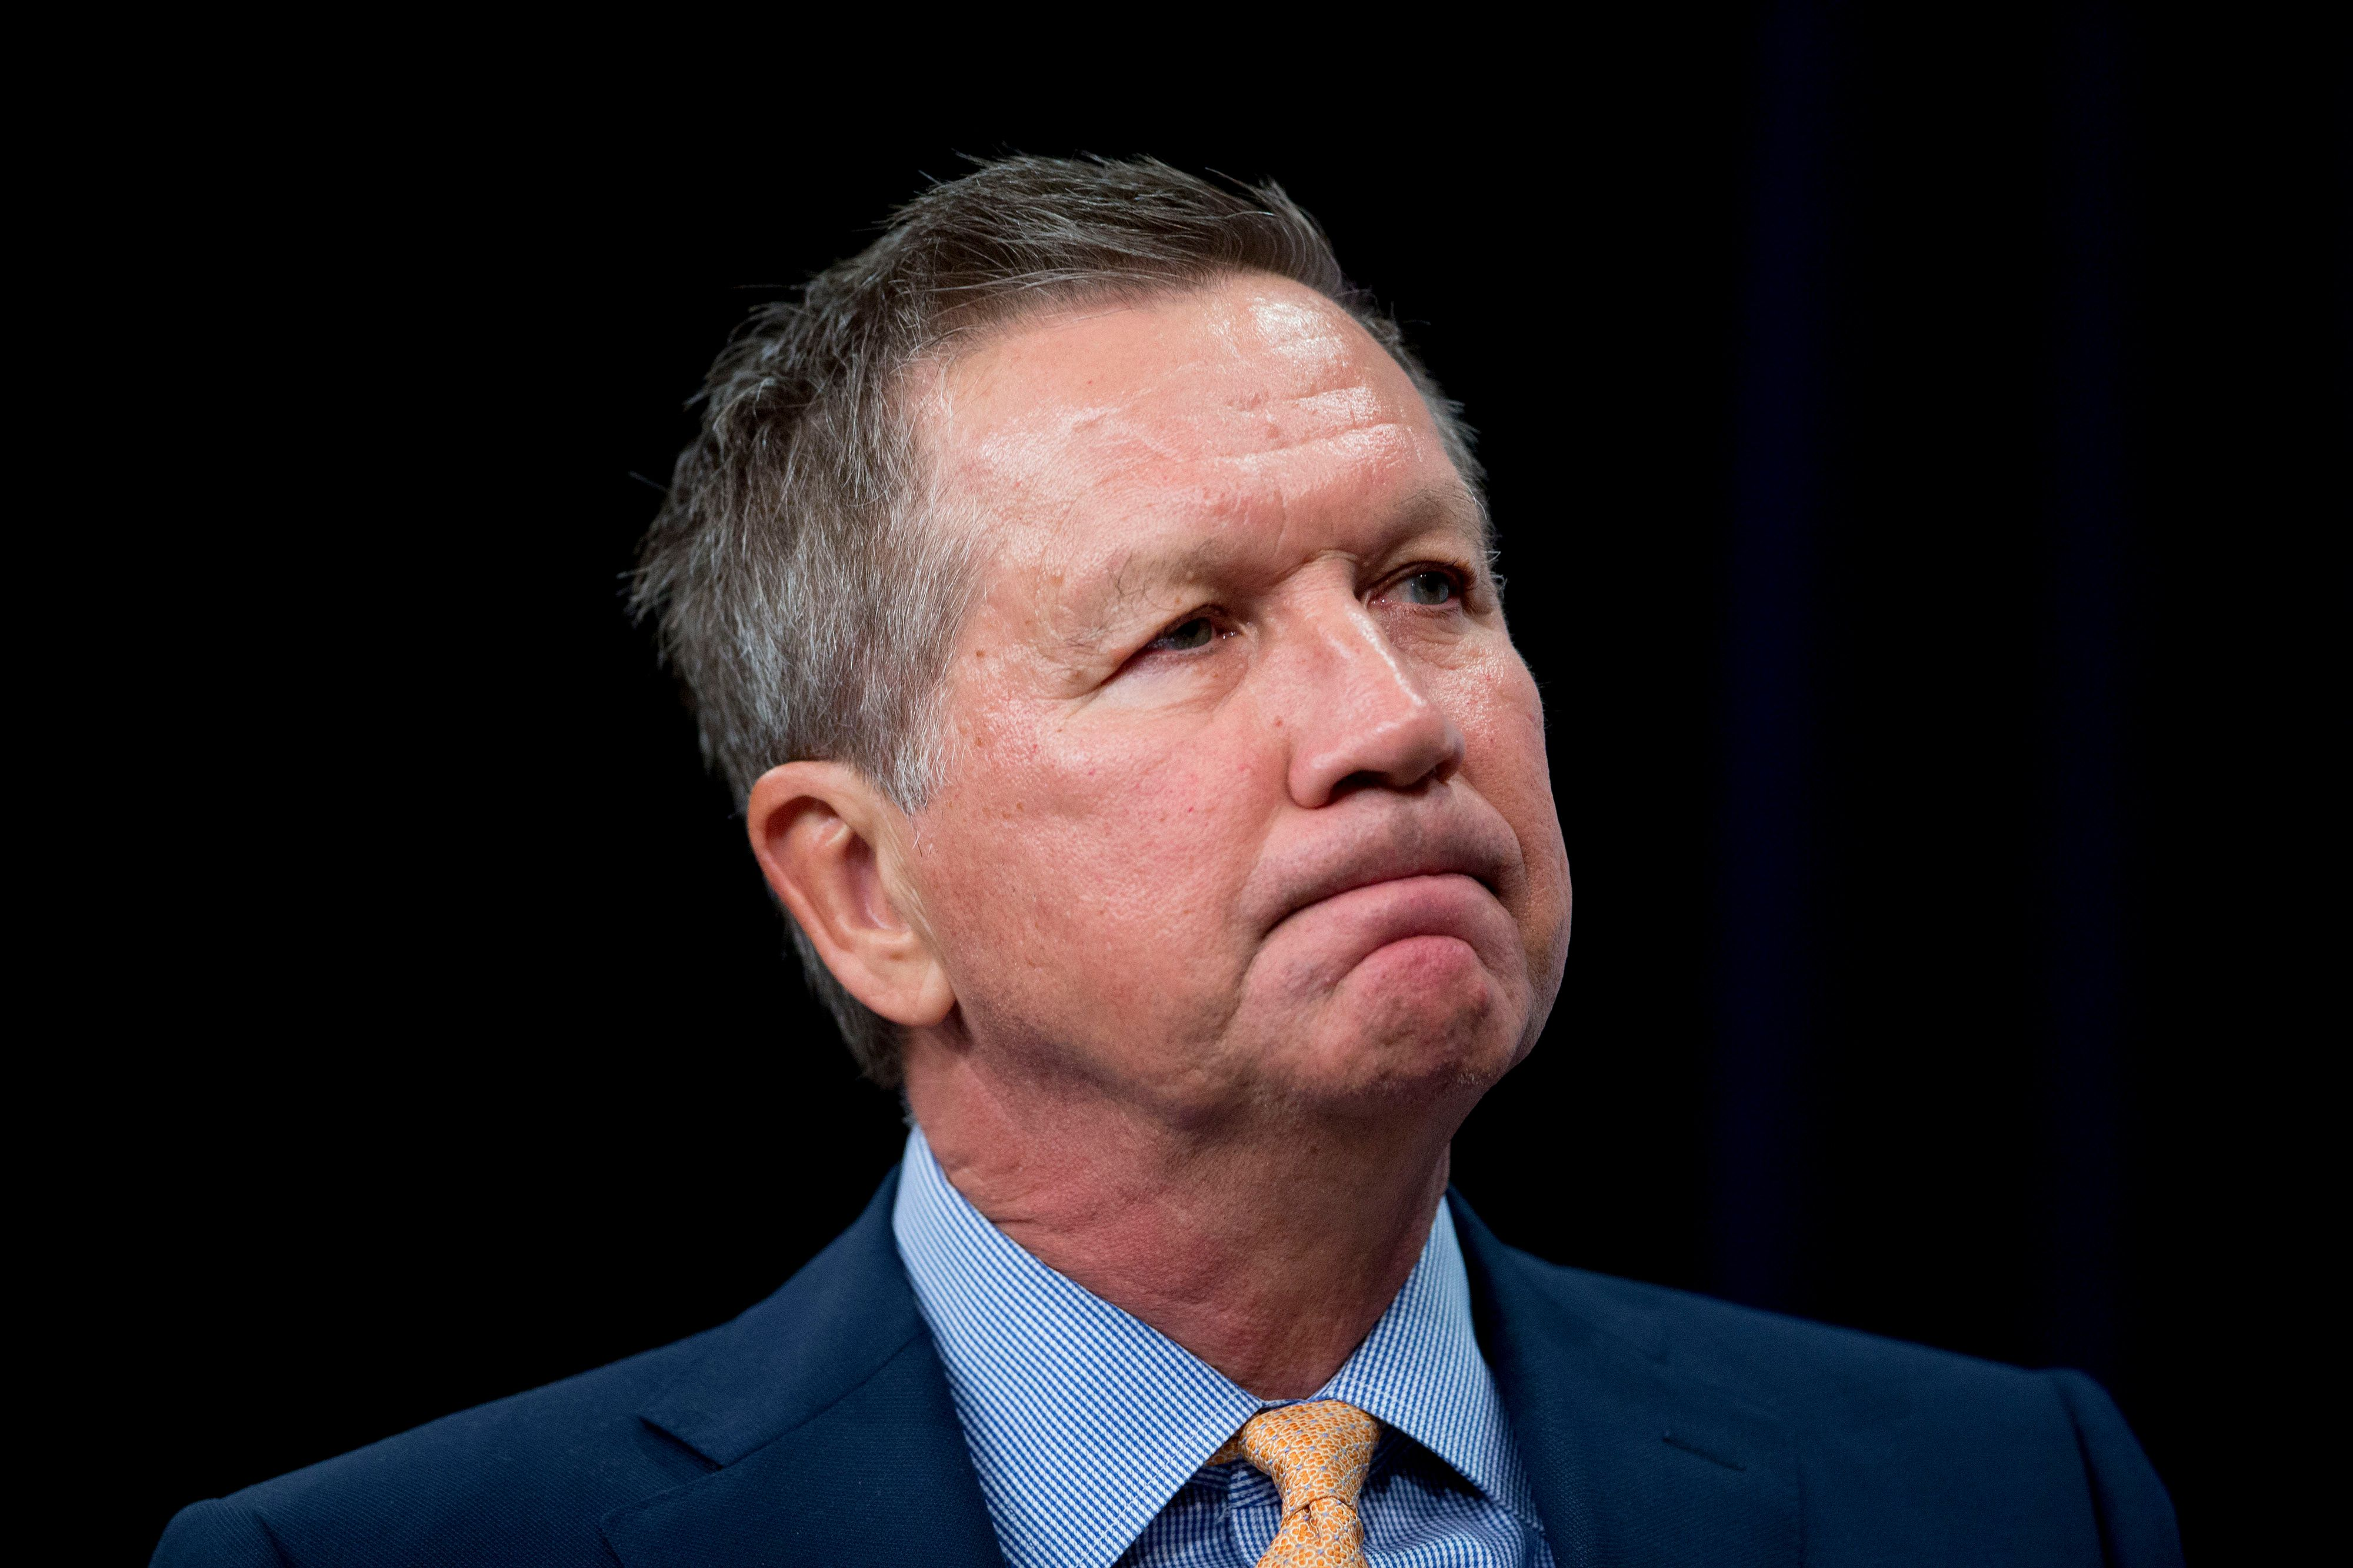 John Kasich, governor of Ohio and 2016 Republican presidential candidate, pauses during a U.S. Hispanic Chamber of Commerce interview at the Newseum in Washington, D.C., U.S., on Tuesday, Oct. 6, 2015. Kasich in Sept. hired Cory Crowley, a former aide to Senator Chuck Grassley of Iowa, to be his state director, and state Representative Mary Ann Hanusa, who worked for former President George W. Bush, as his state chairwoman. Photographer: Andrew Harrer/Bloomberg via Getty Images